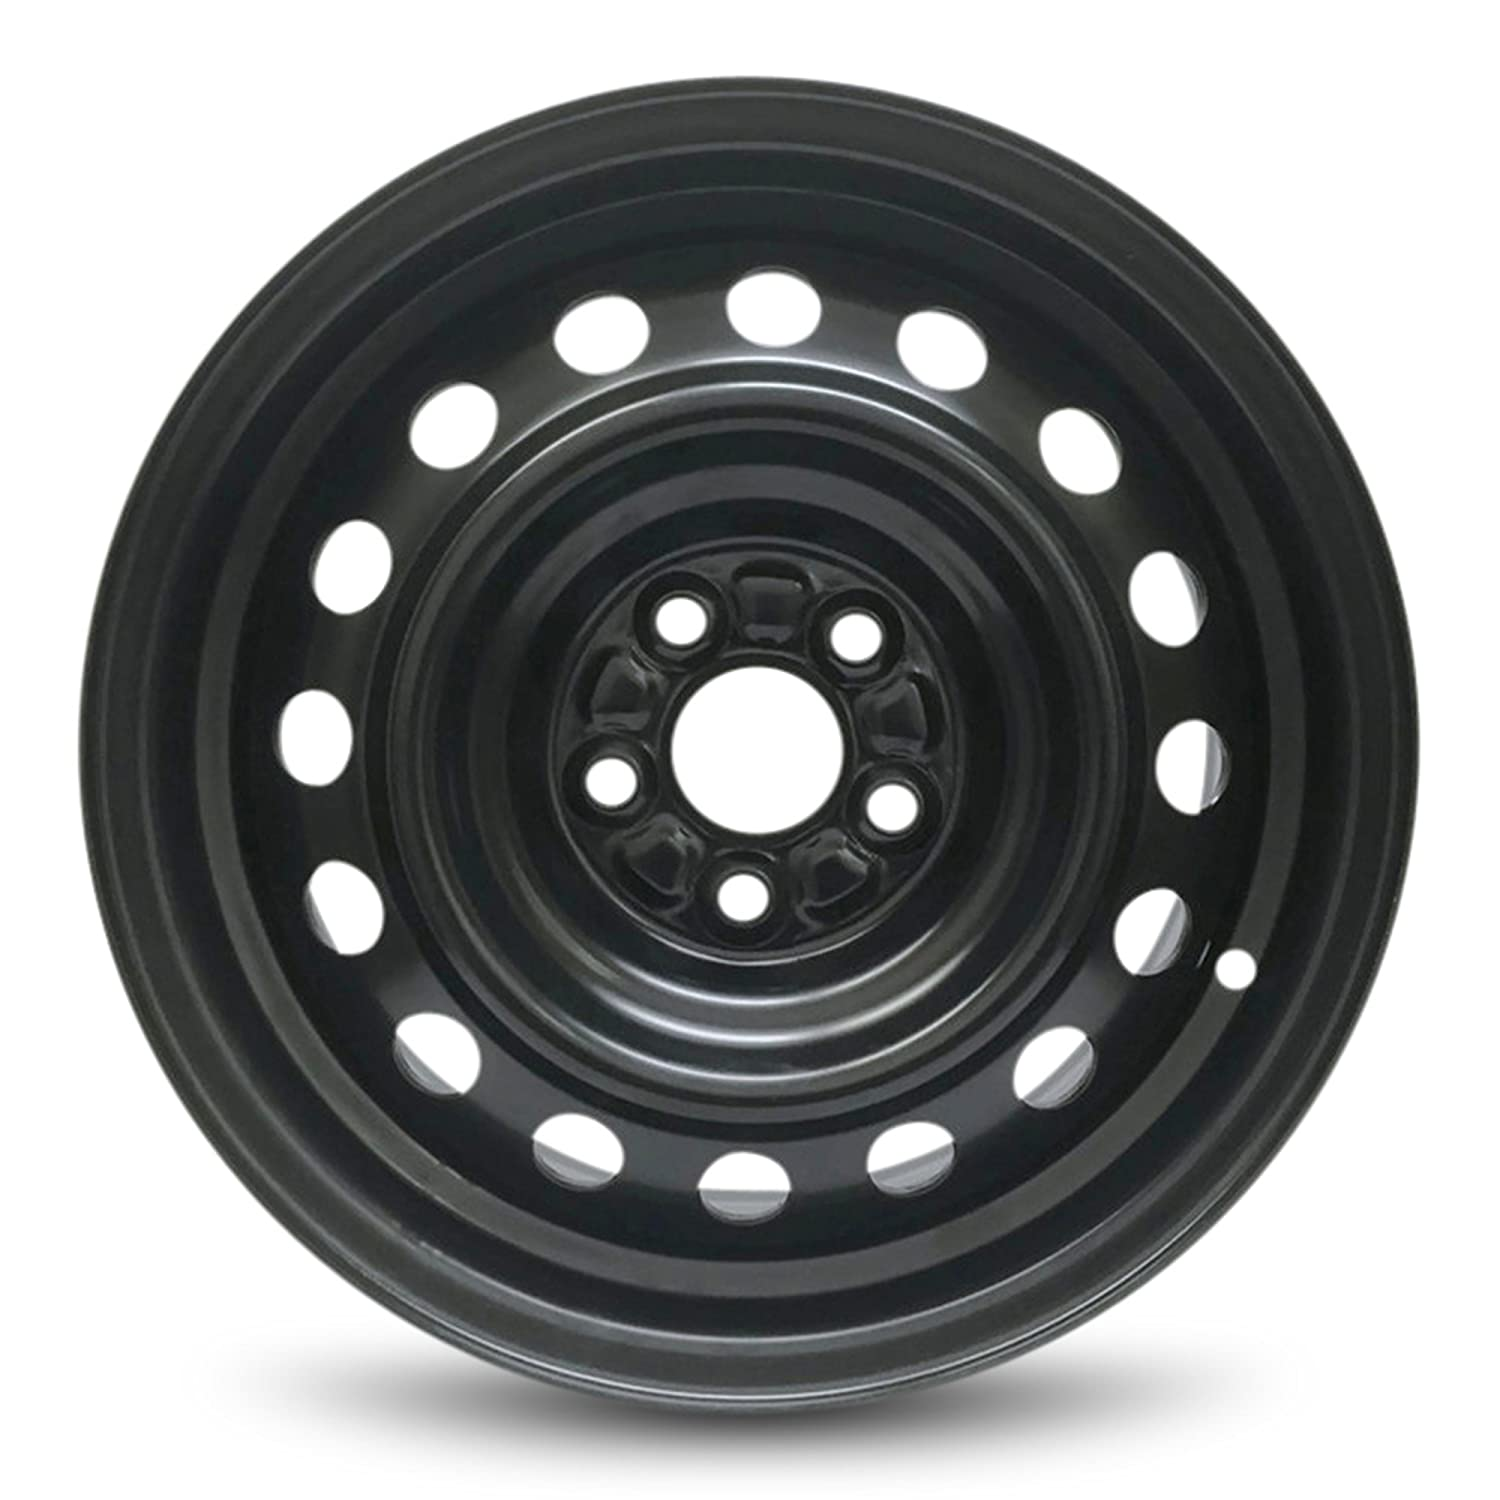 Amazon Wheels Tires & Wheels Automotive Car Truck & SUV